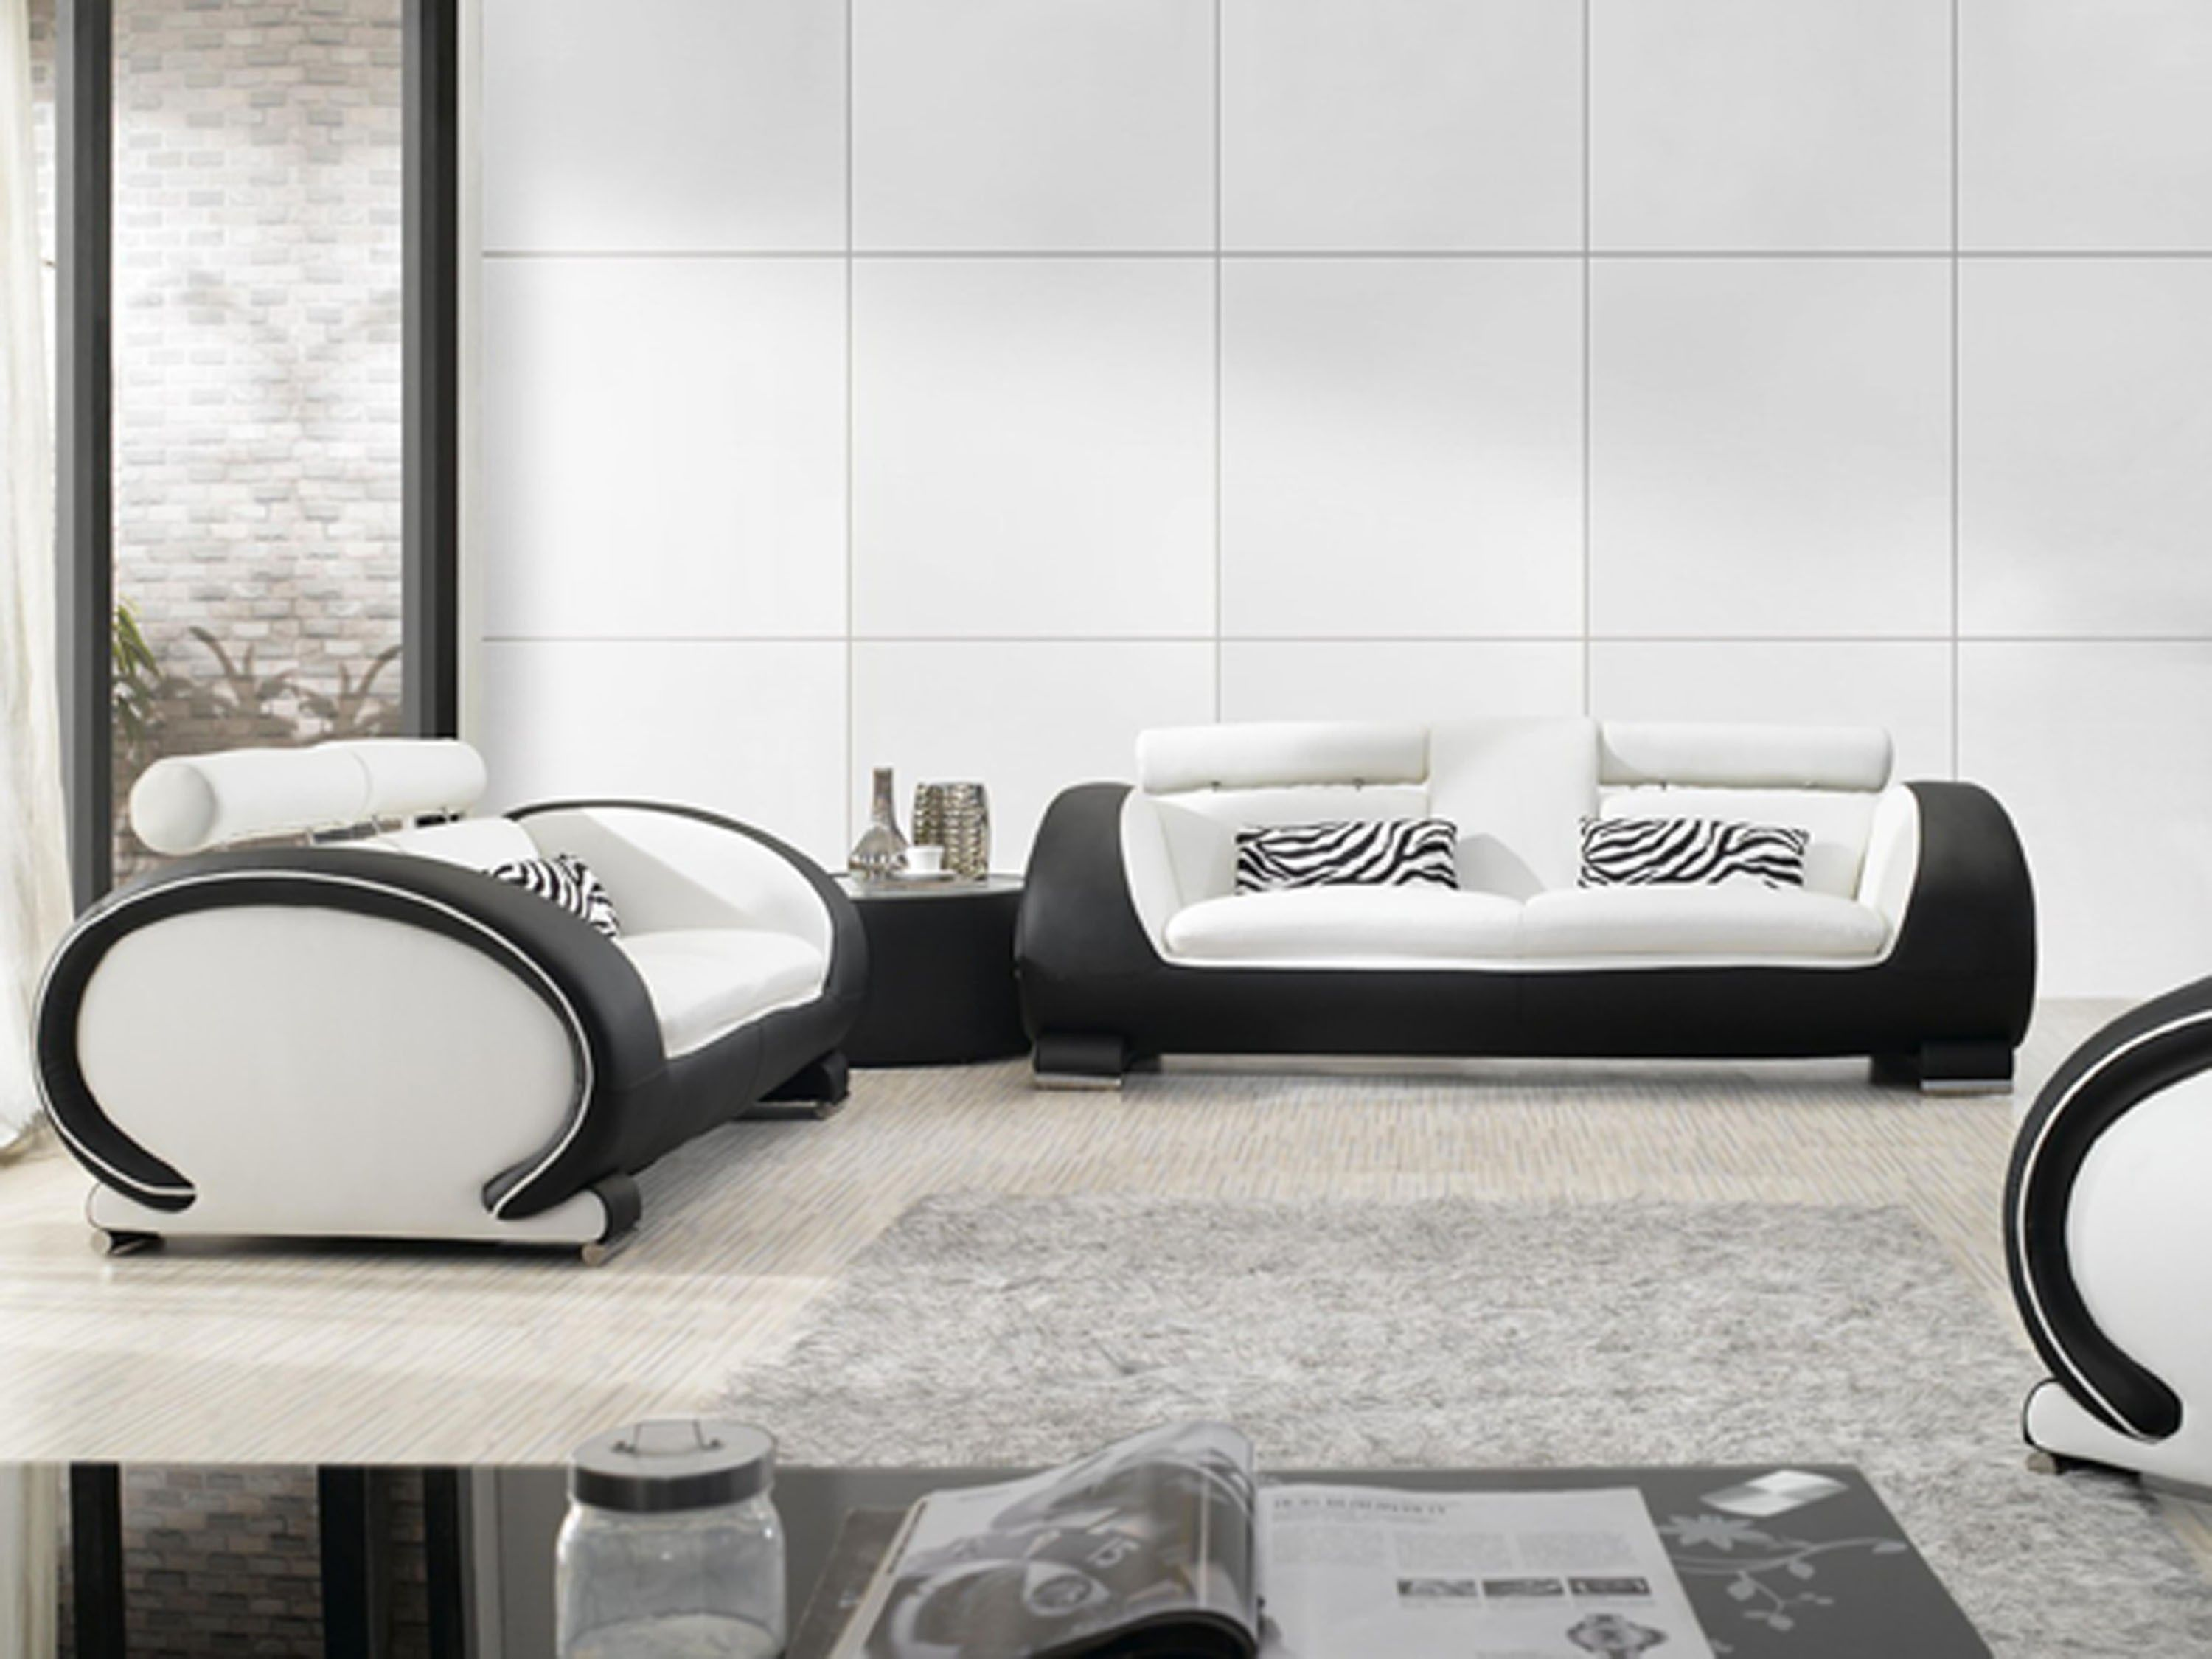 White Leather Couch Tips To Keep Them Clean My Decorative White Sofa Design Black And White Sofa Leather Sofa Set